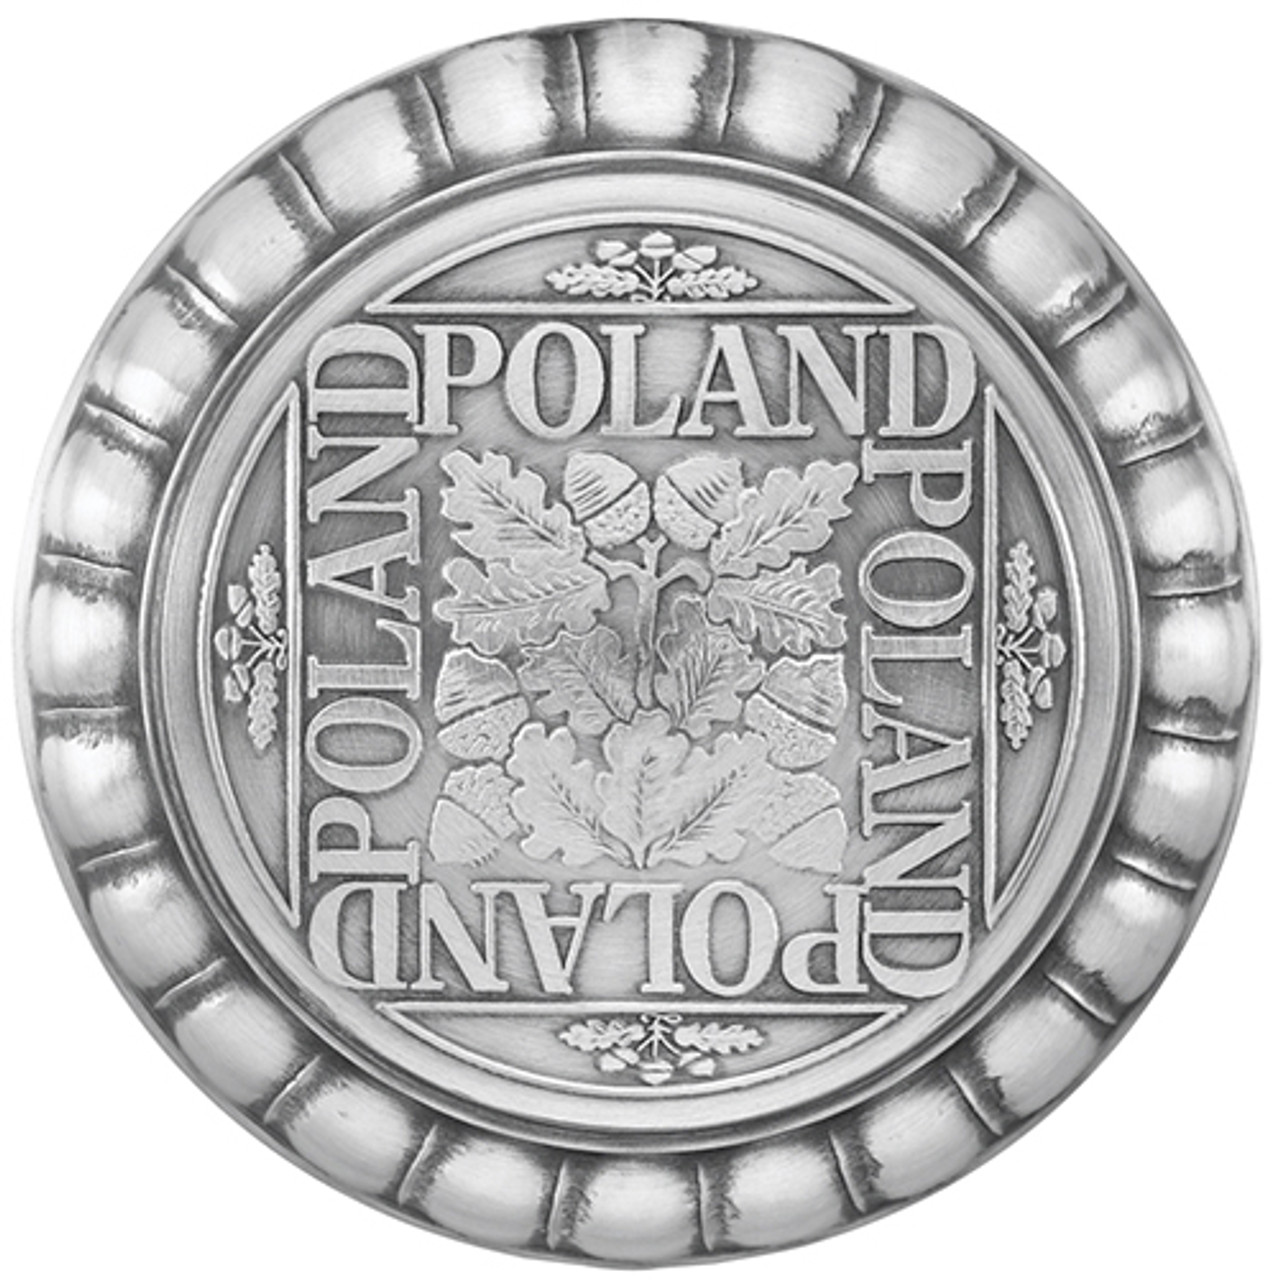 Pewter Lid of Polish Themed Authentic German Beer Mug